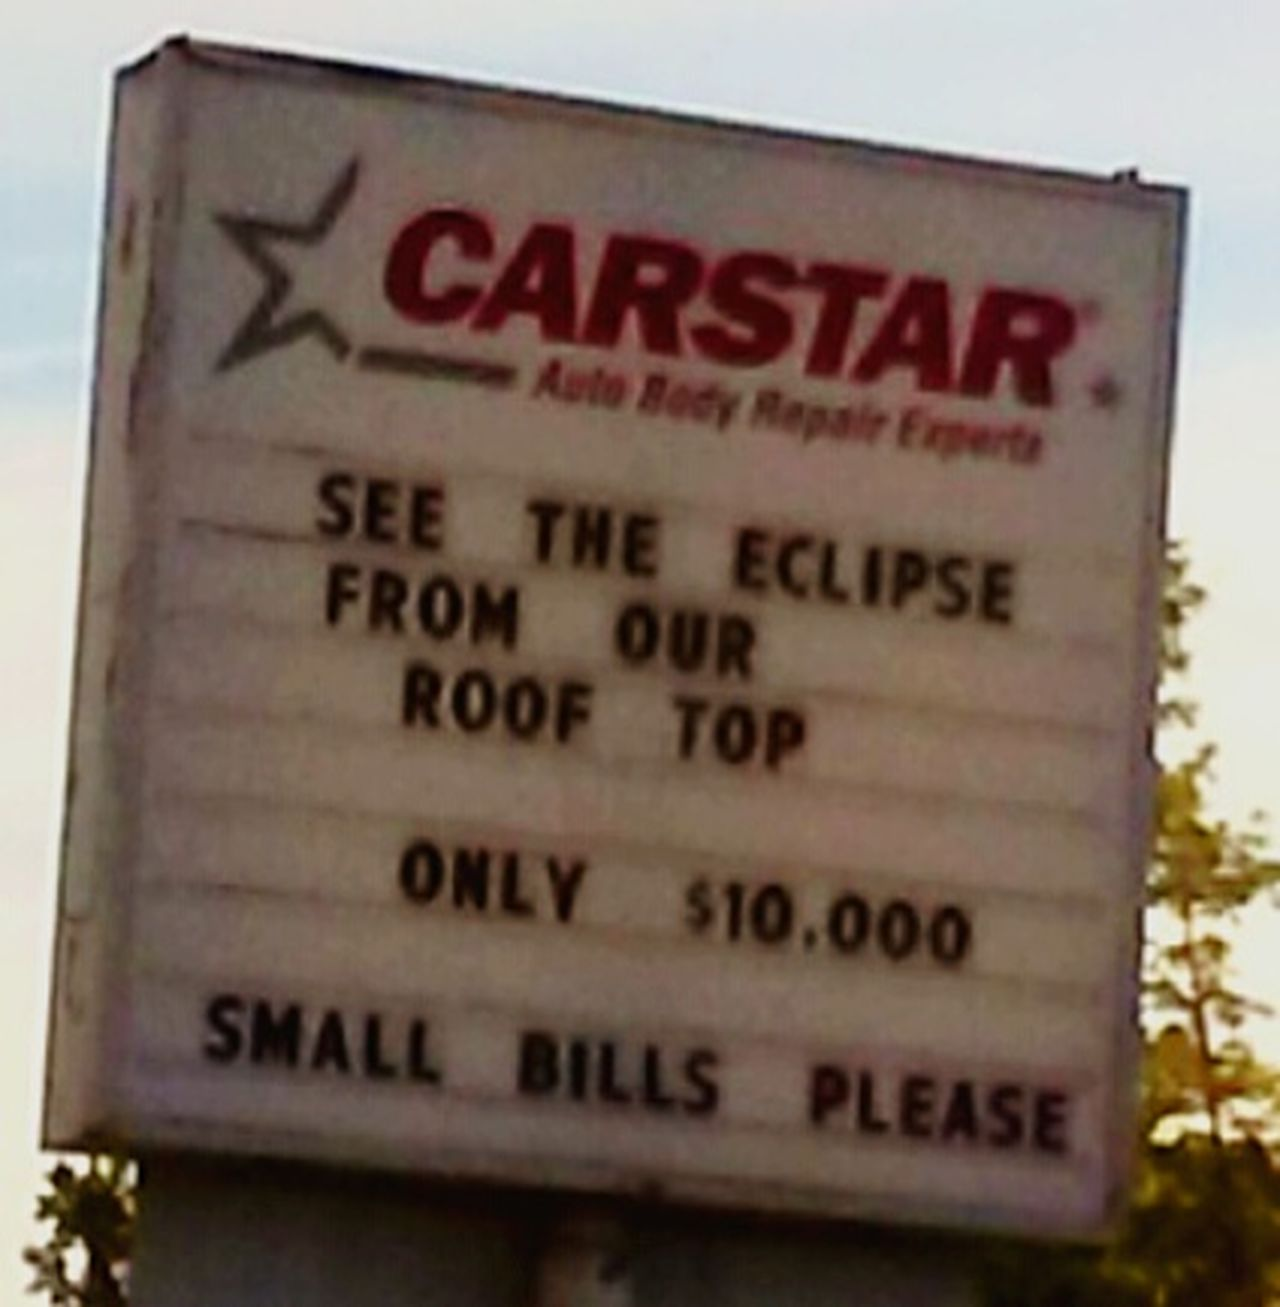 In case youre seriously Interested , I thibk this sign could be taken 100% seriousy!!!😂 I can make the arrangements for you - for the low price of $499.95😀😀😀 Text Communication Solar Eclipse 2017 Shits And Giggles Total Eclipse Amazing Event Once In A Lifetime Come One, Come All Come To The Willamette Valley Oregon Unlimited Oregon Fine 100% Totality Funny Signs Comedy Comical Sightings Comical Moments Space And Astronomy Moon Moments Special Events View From The Top Cash Or Credit Per Person Getting Inspired Creative Power Great Ideas Mix Yourself A Good Time